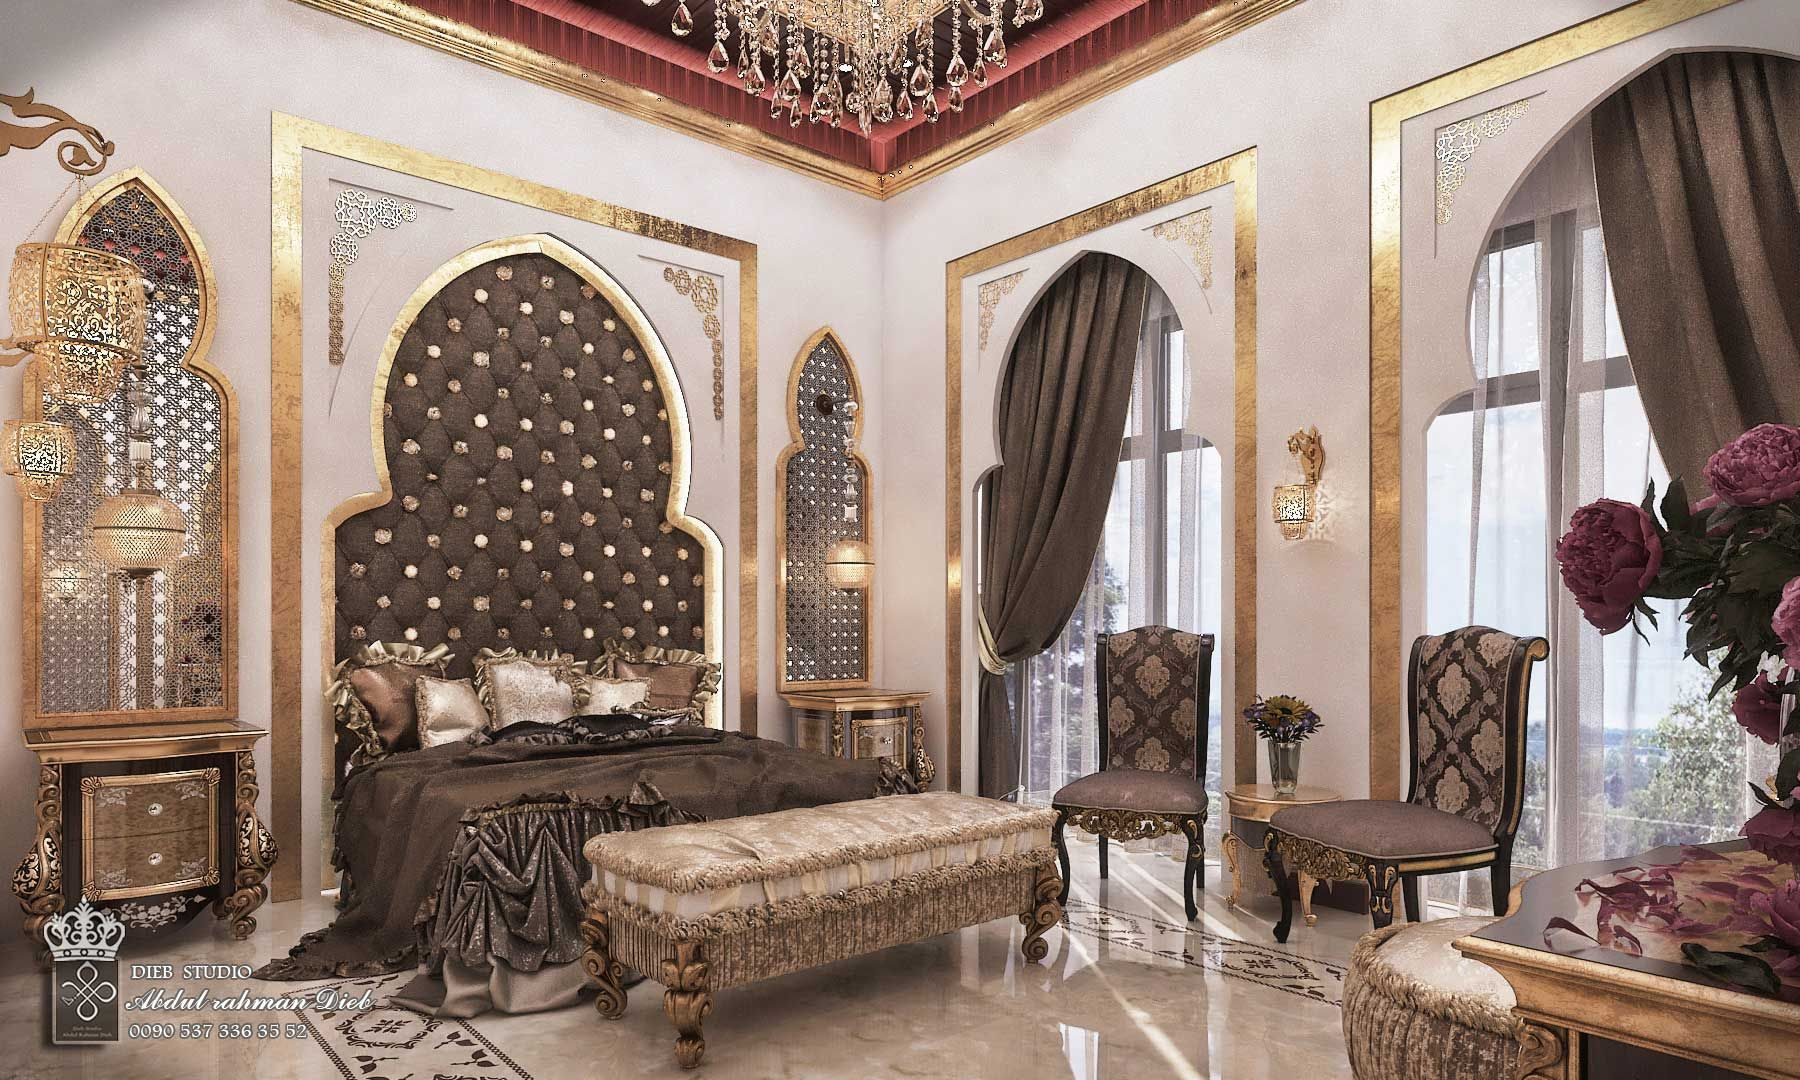 Young Bedroom With Royal Touches Ksa Royal Bedroom For Girl